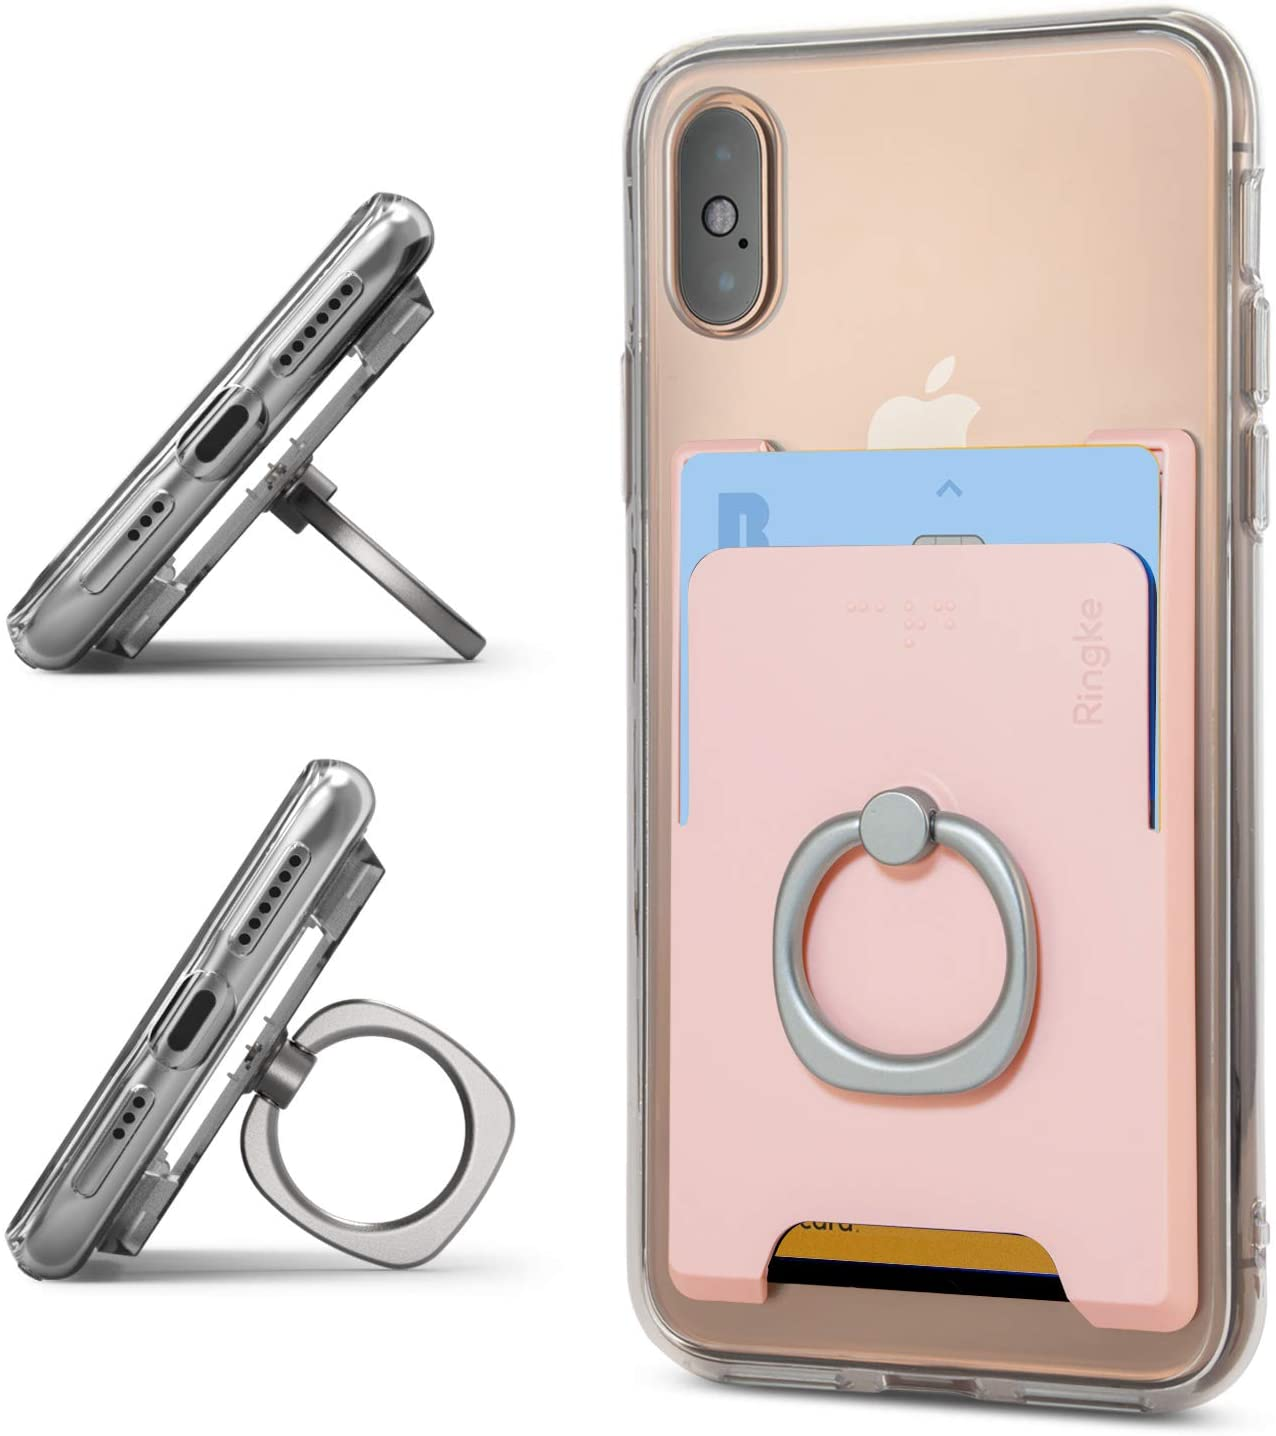 Ringke Ring Slot Card Holder Slim Hard Premium PC Credit Card Accessory Attachment with Finger Ring Compatible for iPhone, Galaxy, Pixel and More - Peach Pink